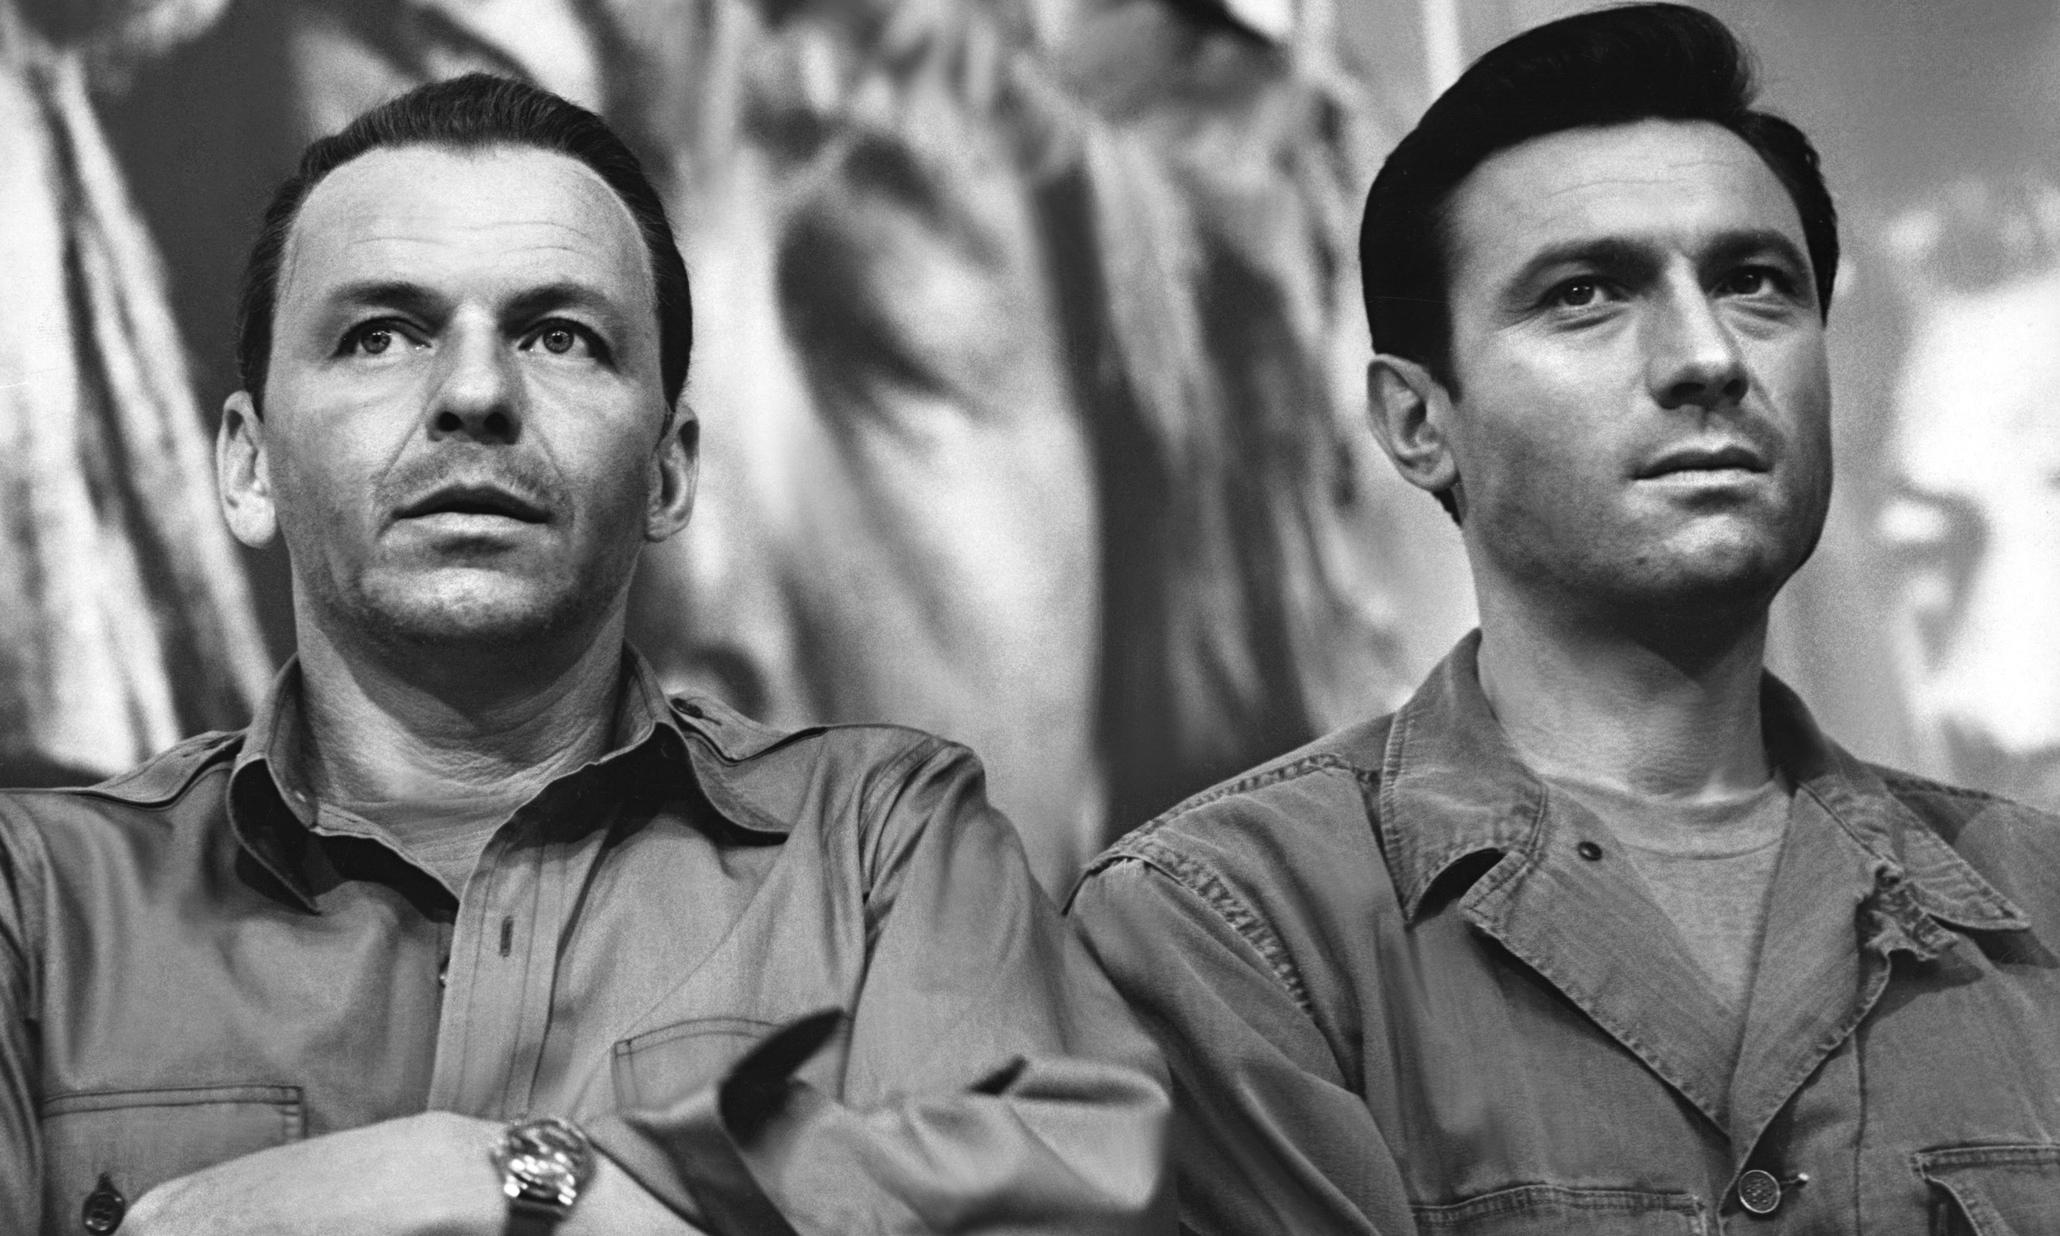 (l to r) Frank Sinatra and Laurence Harvey undergo brainwashing by the Chinese Communists in The Manchurian Candidate (1962)